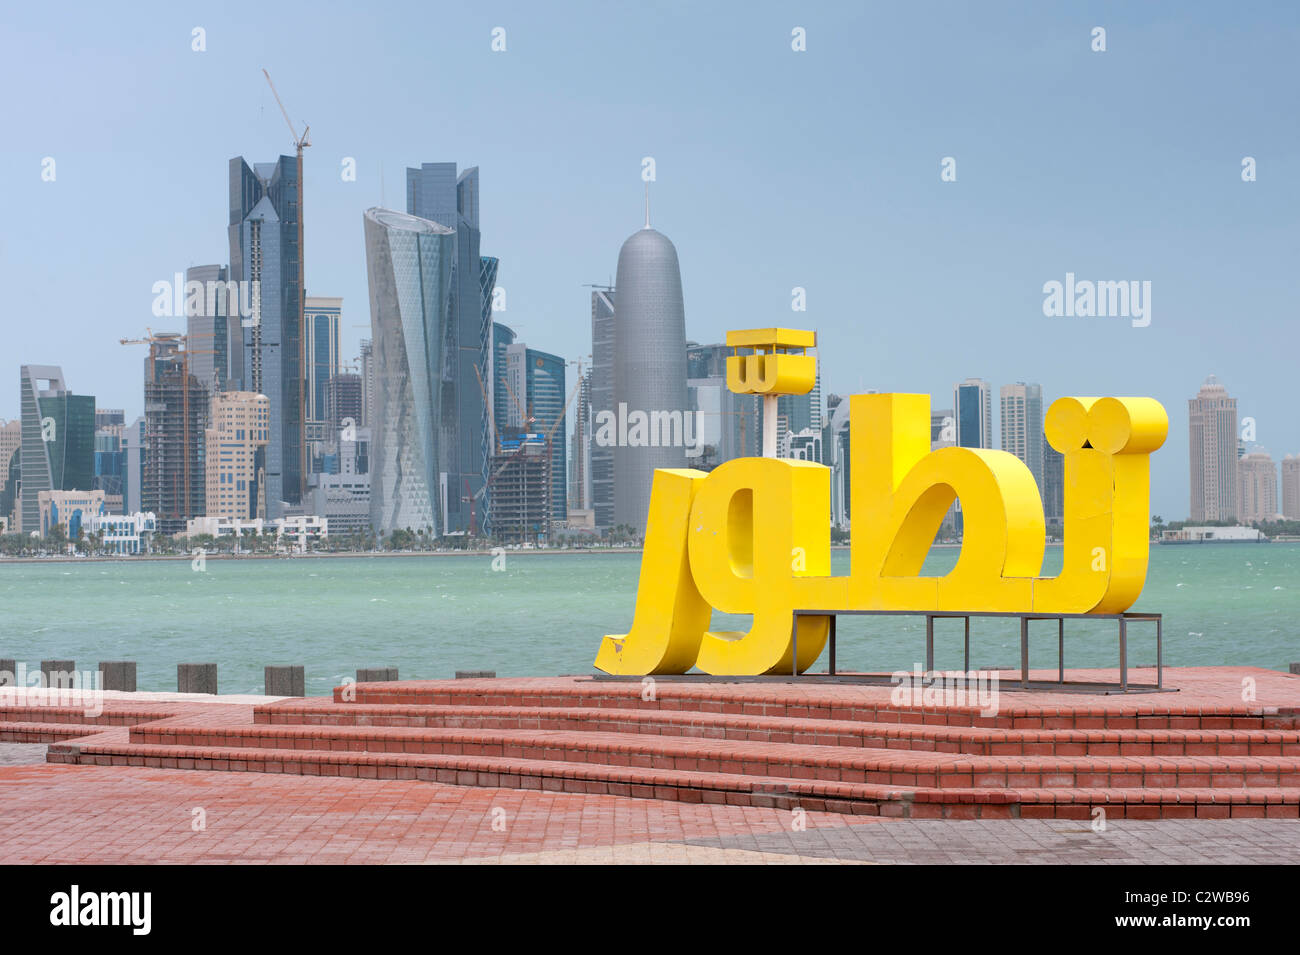 View from Corniche to office towers in business district in Doha Qatar - Stock Image